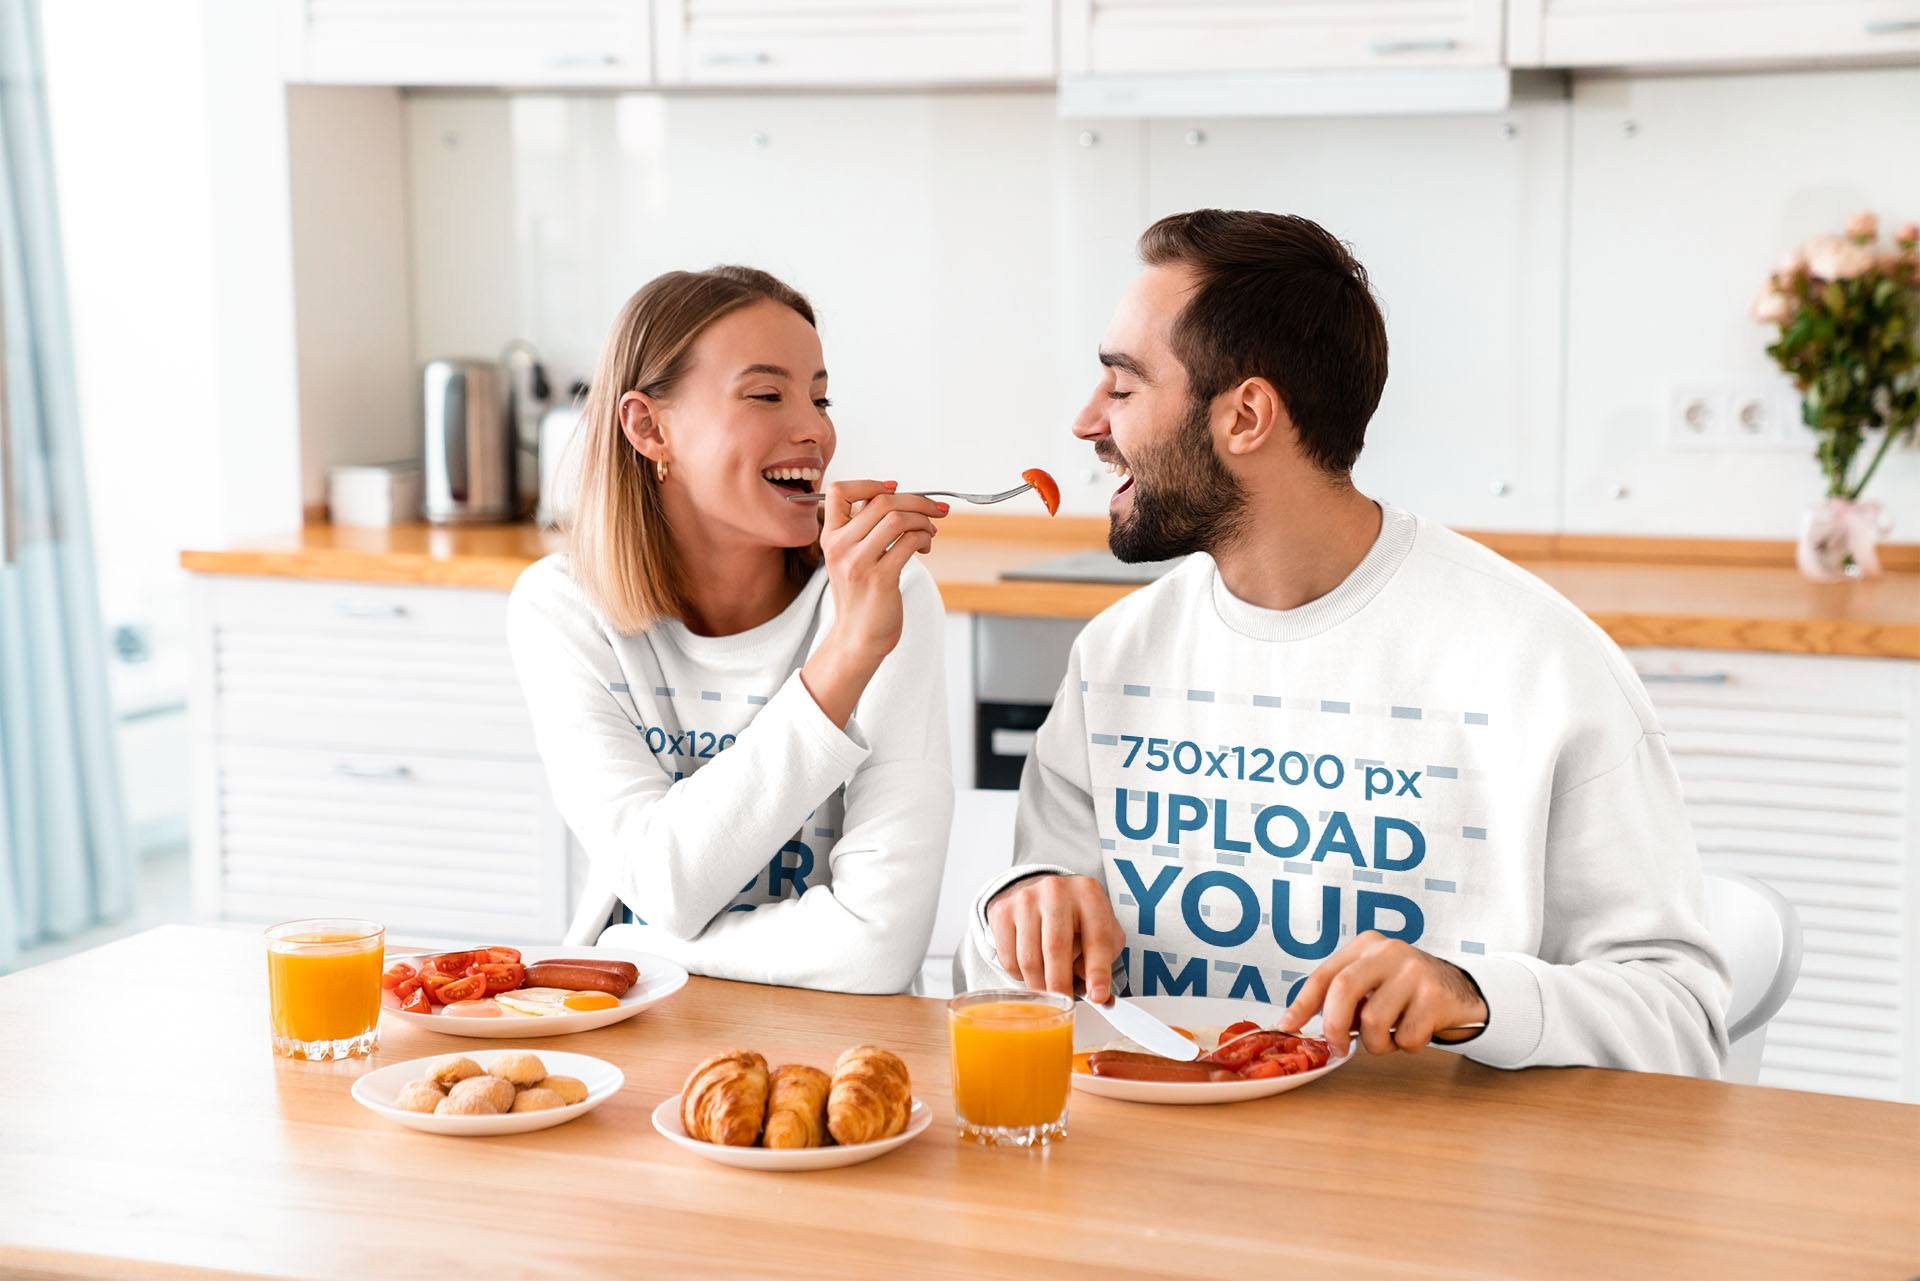 Sweatshirt Mockup of a Couple Having Breakfast Together 40244-rel2